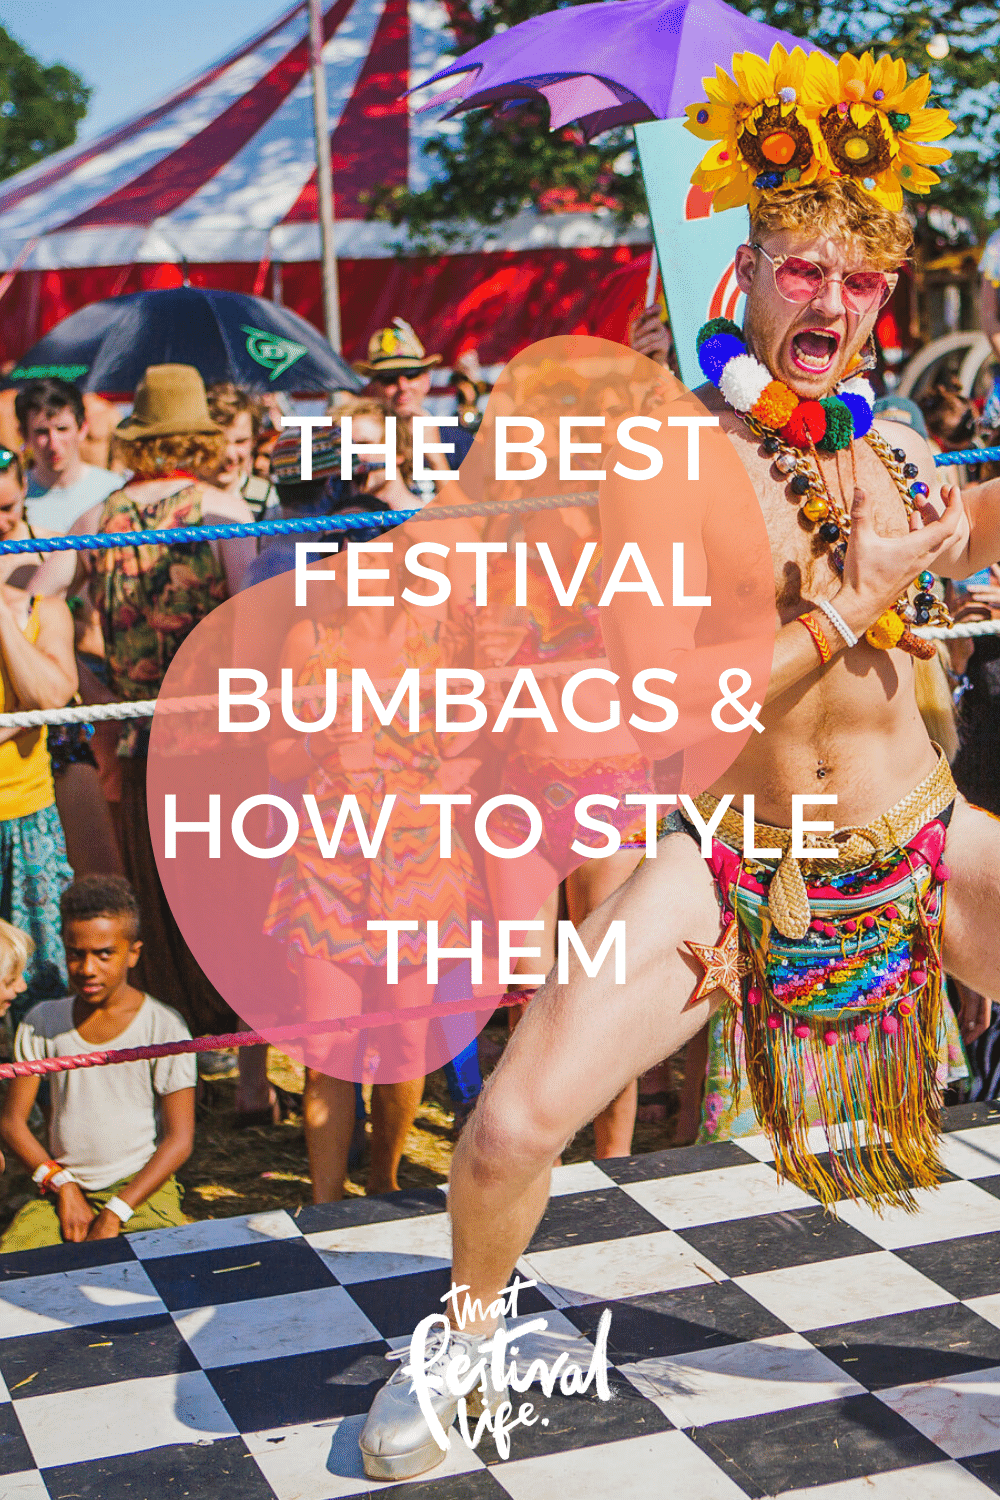 The Best Festival Bumbags And How to Style Them | The best independent makers and designers to get your festival fanny packs from! #FestivalOutfit #RaveInspiration #Shambala